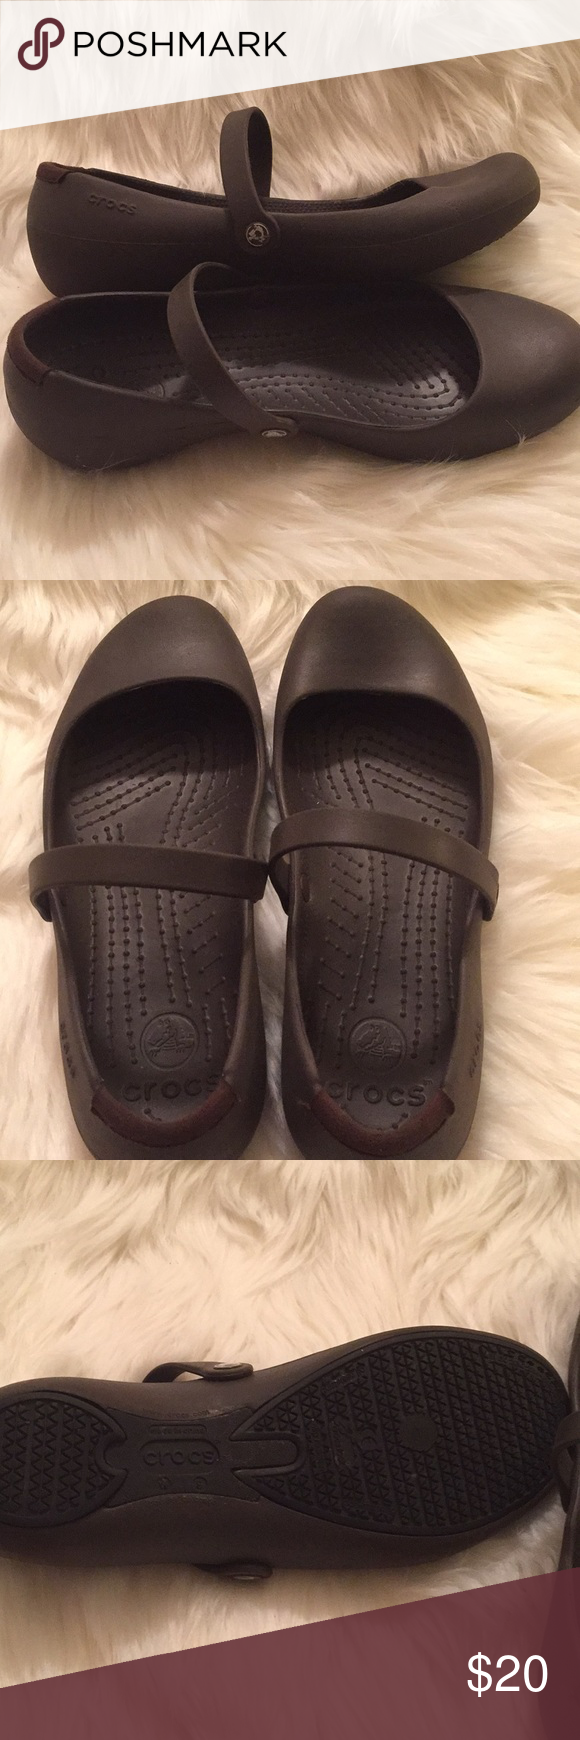 d0b9c4c5647e41 Croc Alice Walk Flat Beautiful flat from Crocs in the color brown. Size W   9. Crossover strap and comfortable. In excellent condition inside and  outside.